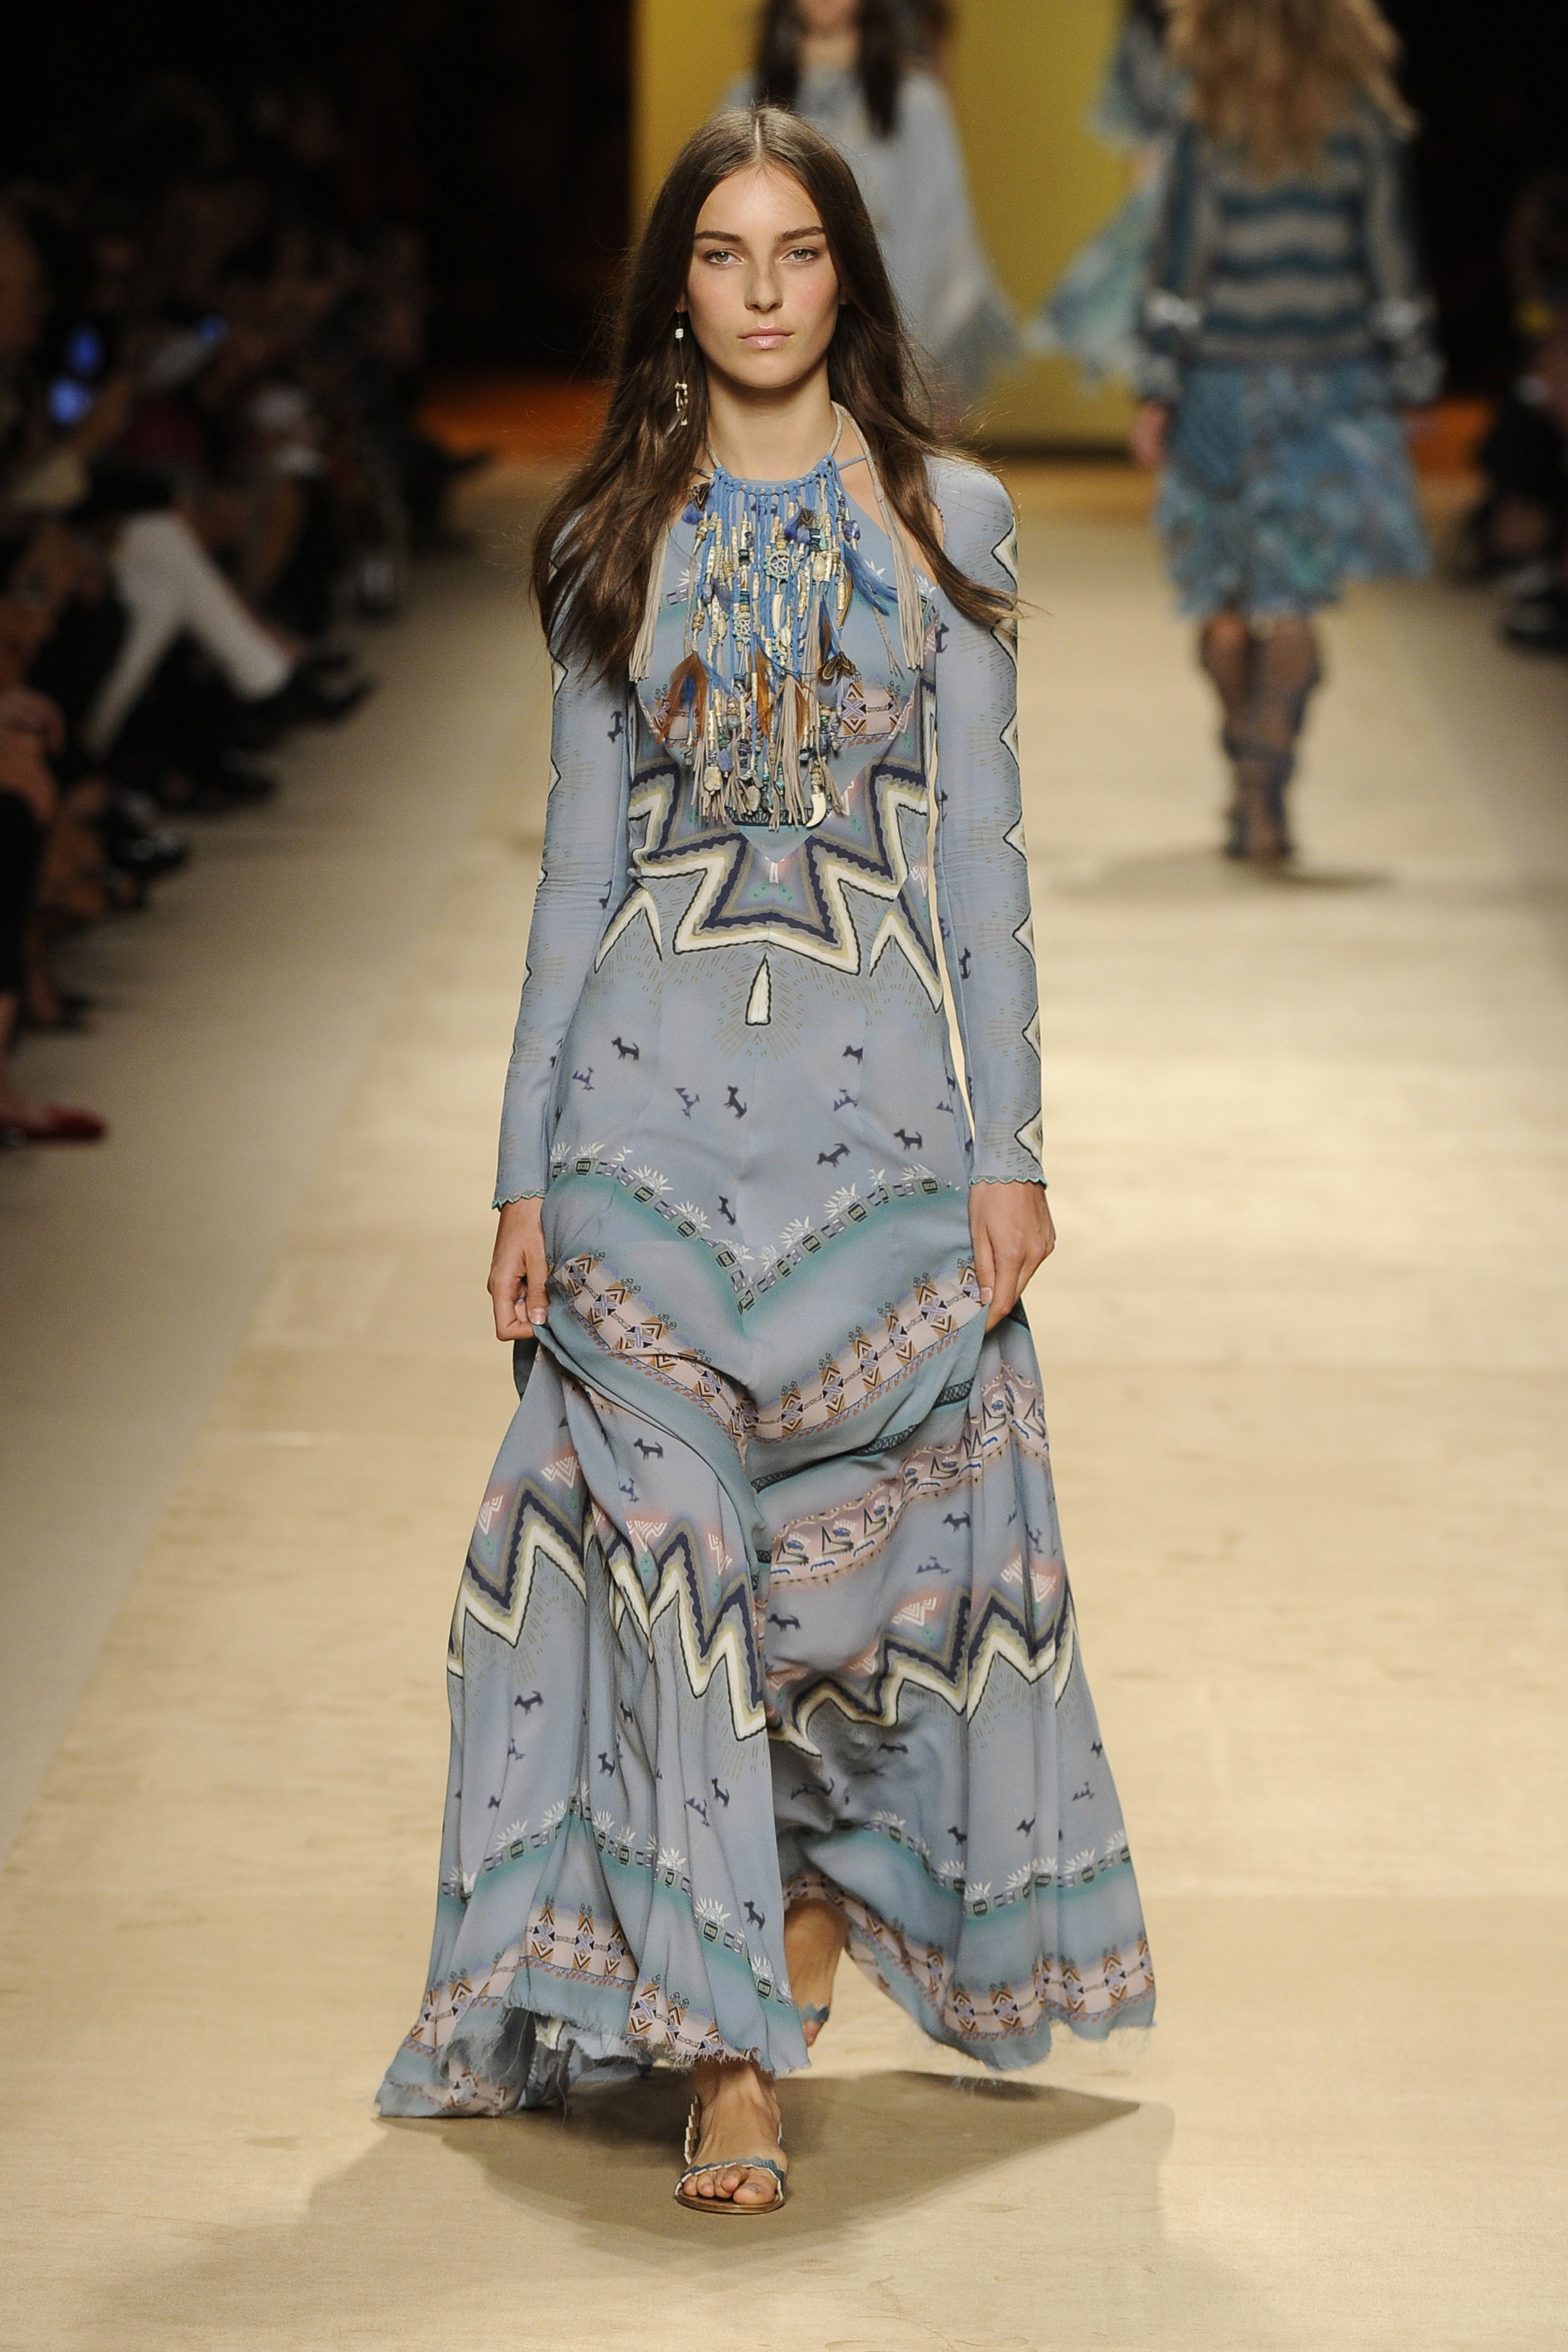 The 70s Are Alive and Well at Etro SS 15 The 70s Are Alive and Well at Etro SS 15 new images